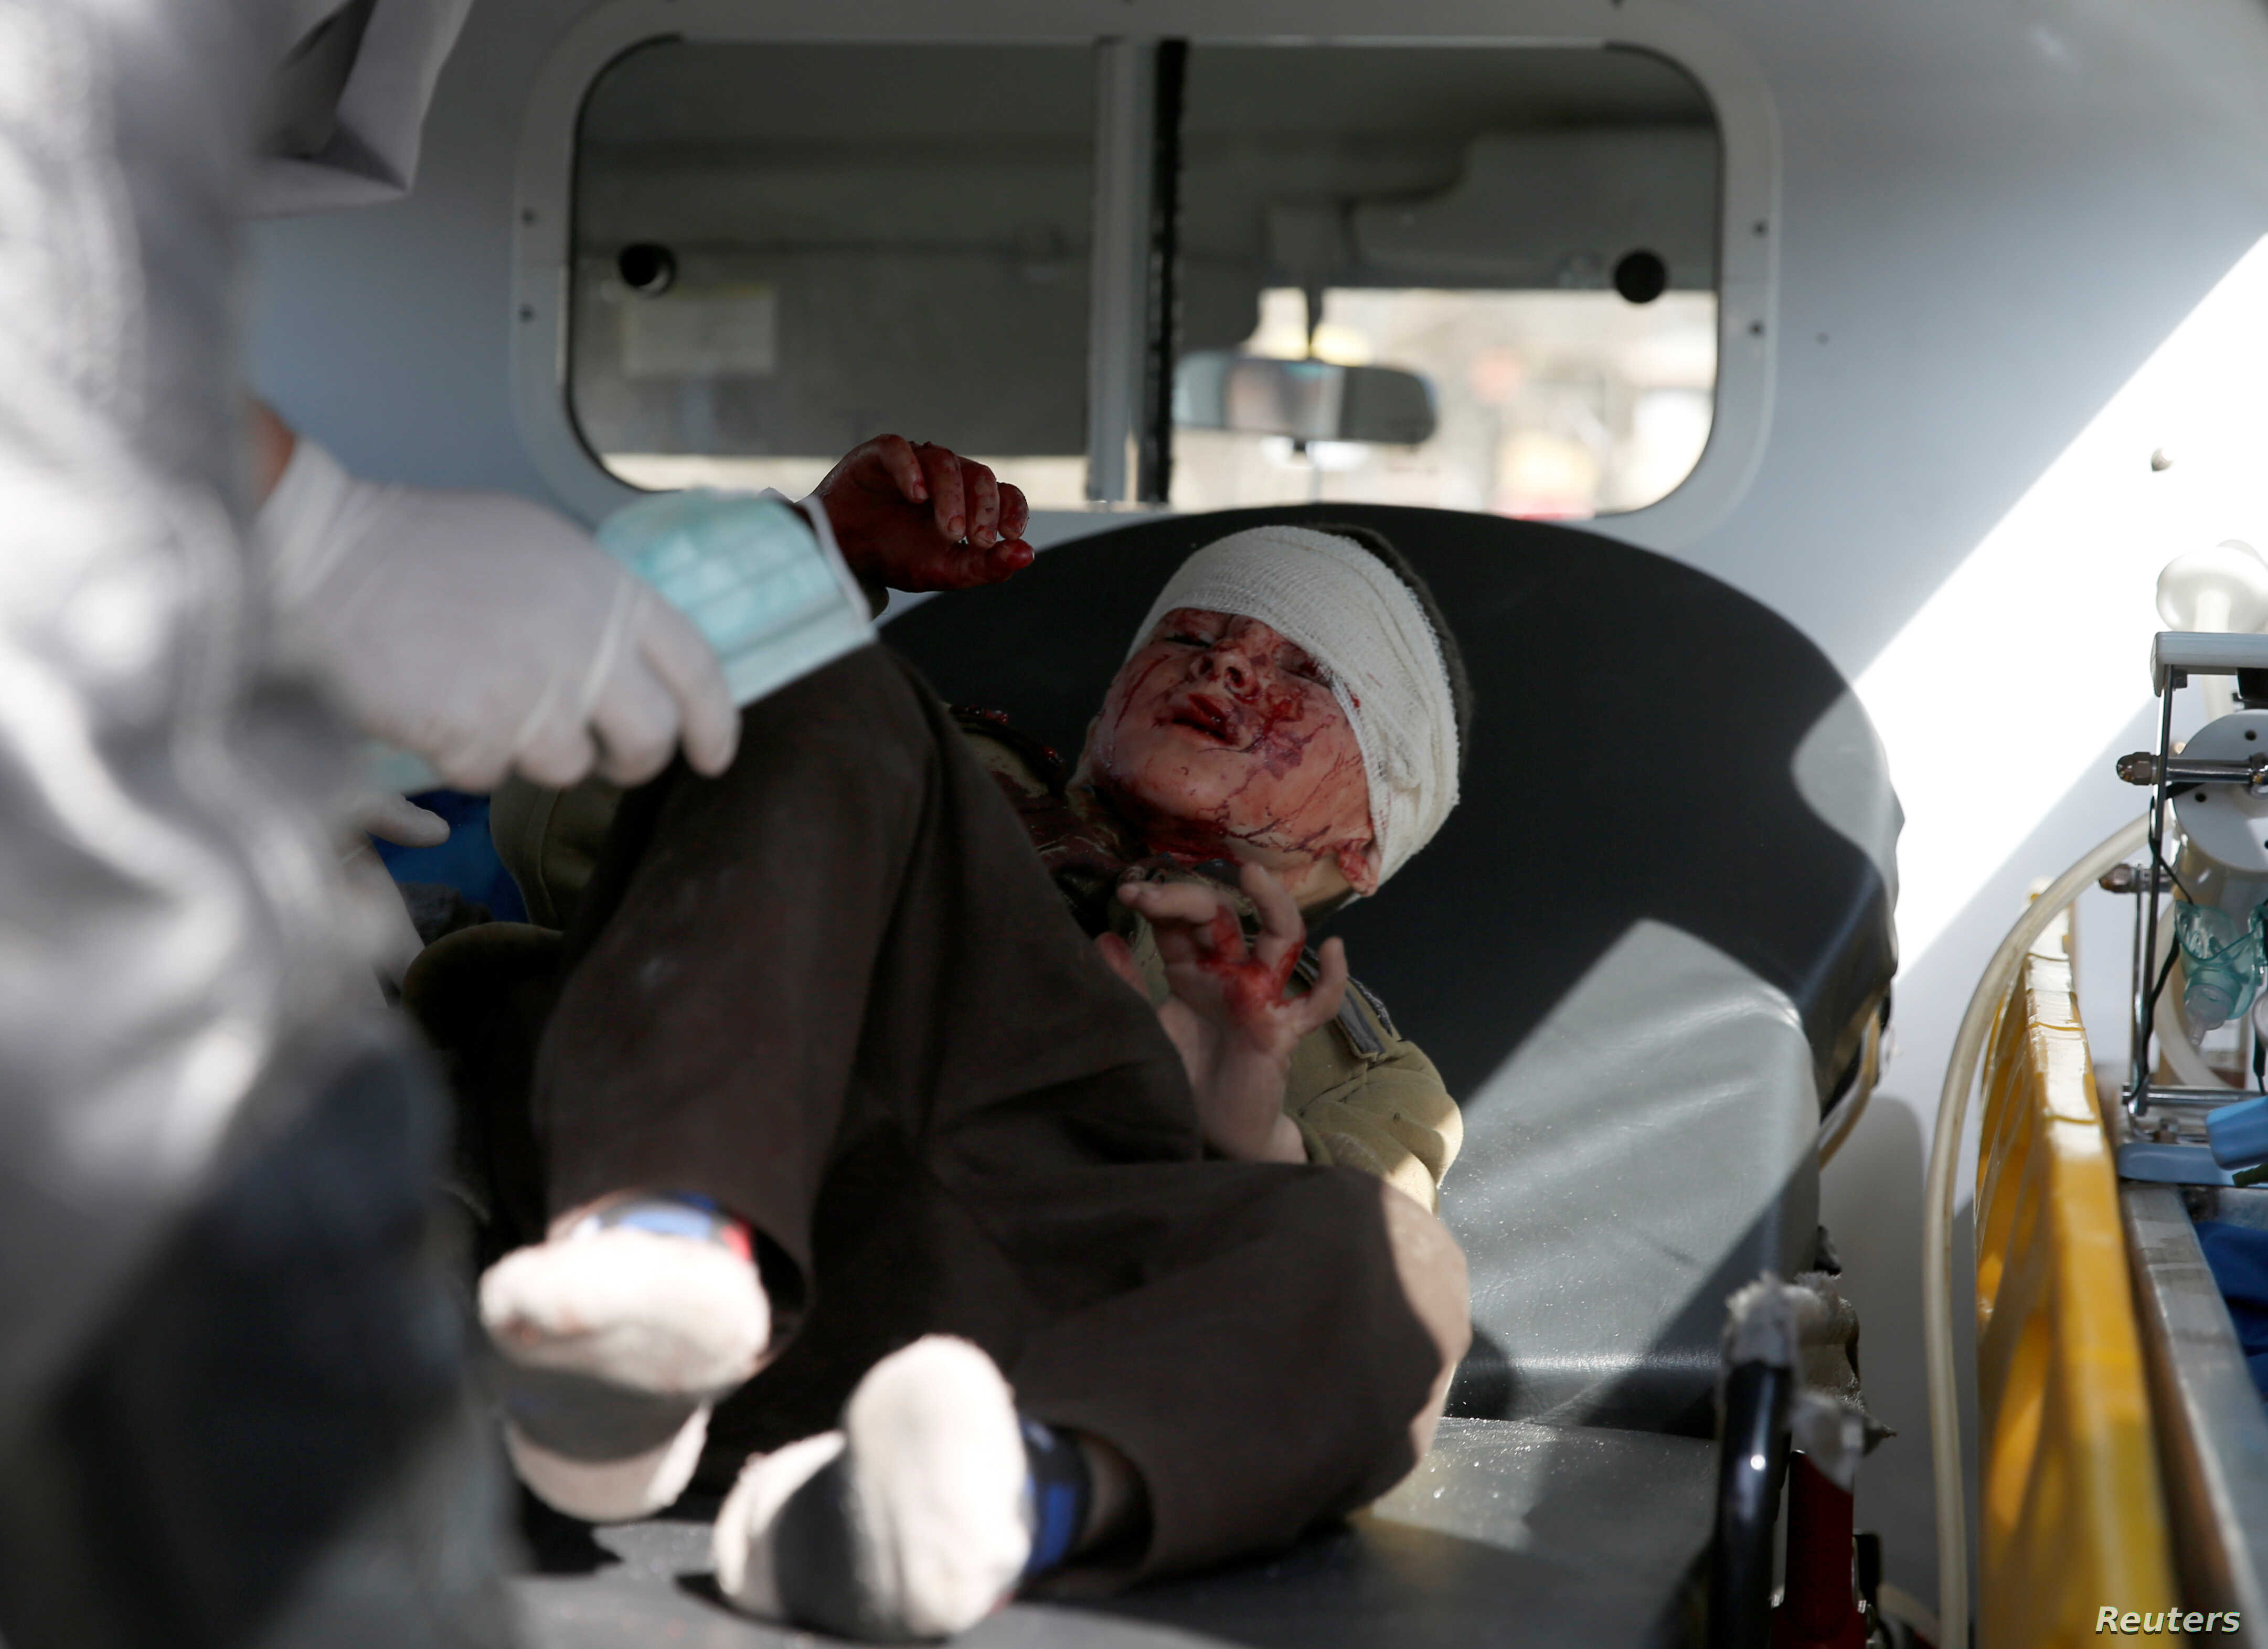 An injured boy is seen in an ambulance after a blast in Kabul, Afghanistan, Jan. 27, 2018.